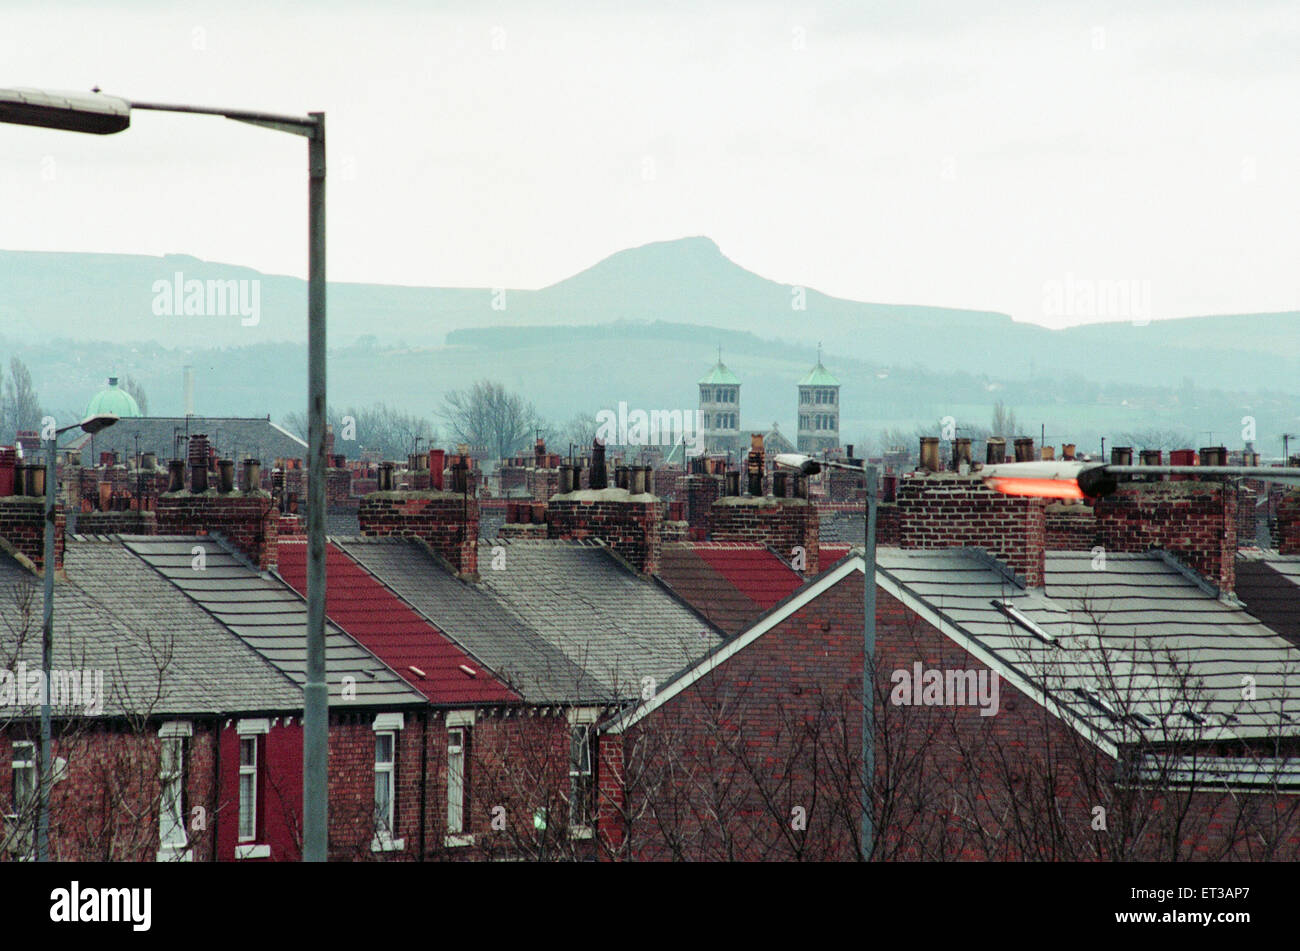 Middlesbrough, 16th February 1993. Rooftops and Chimney Pots. - Stock Image